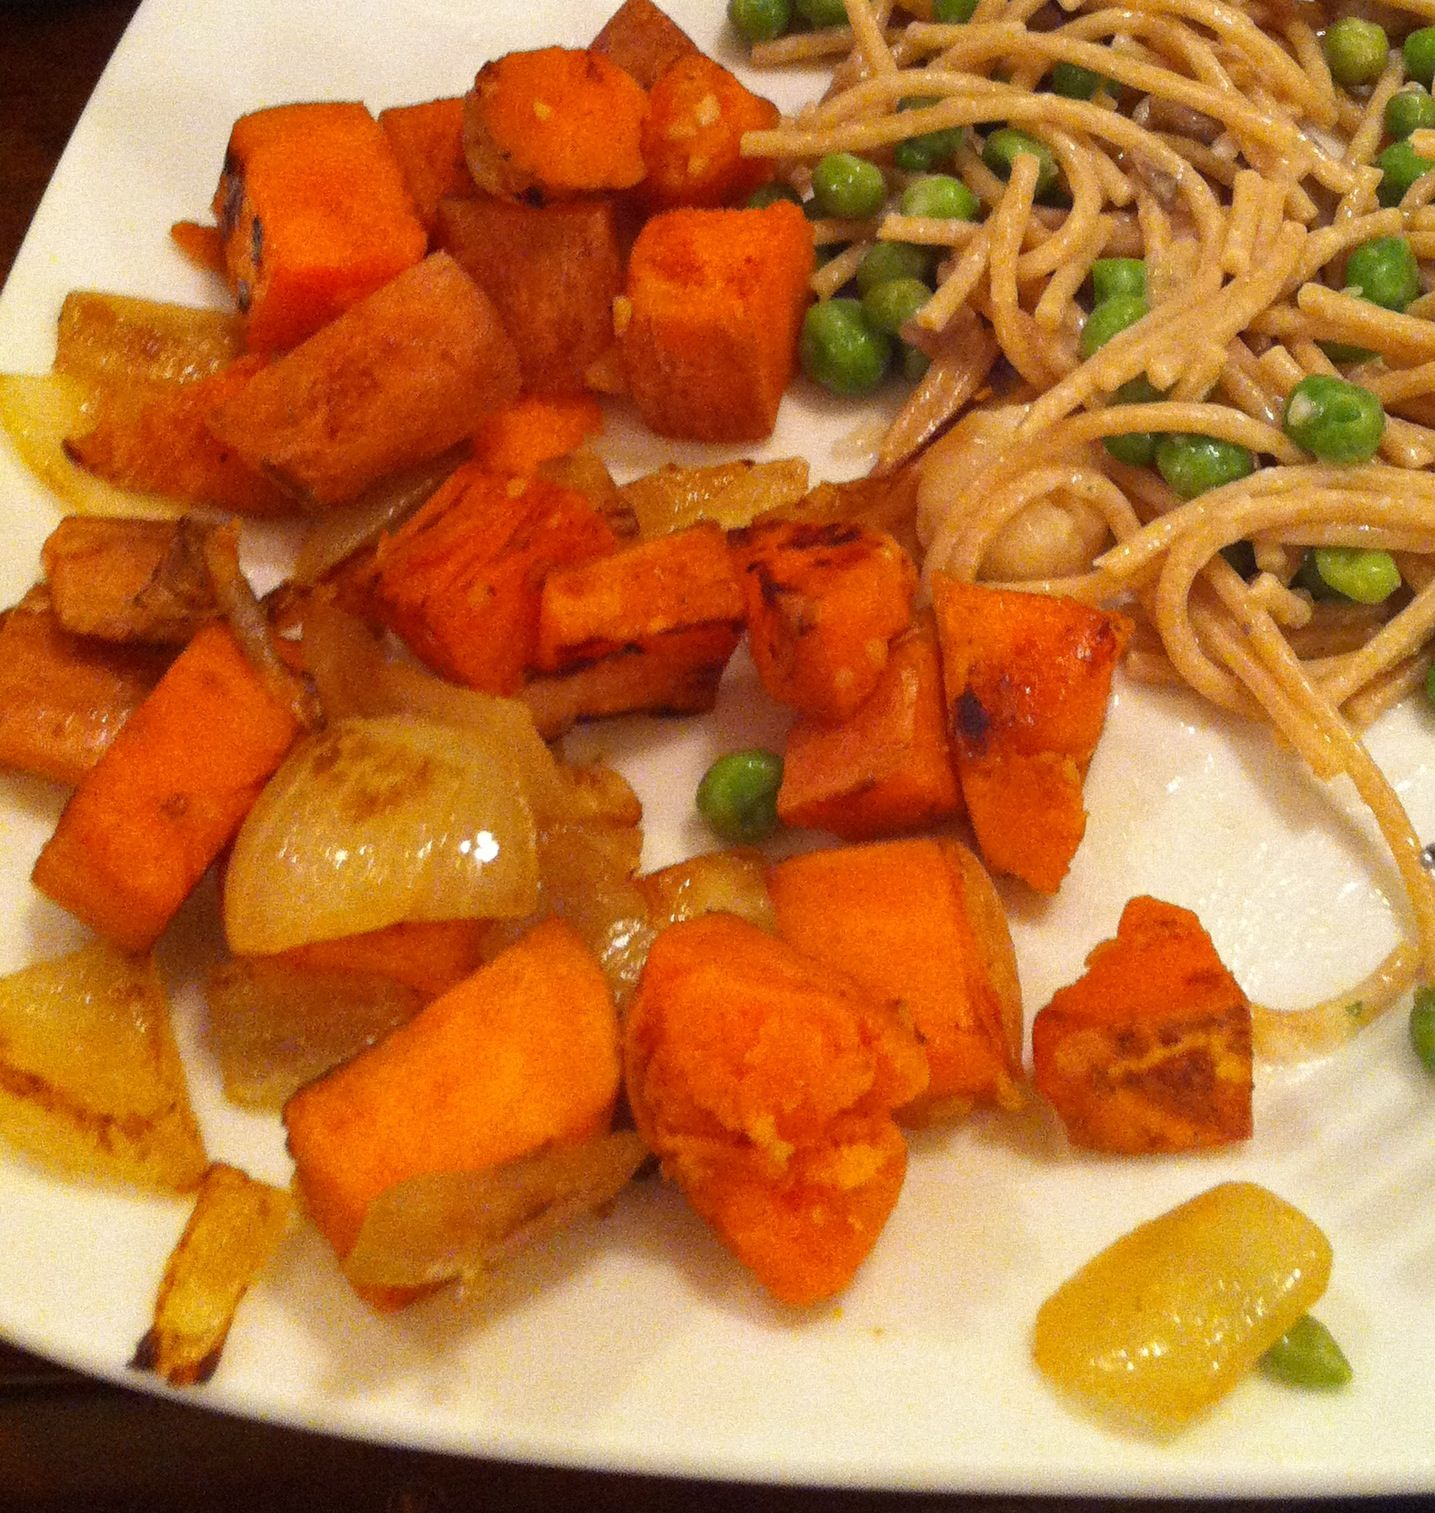 Absolute Best Way To Cook Sweet Potatoes. Microwave 2-3